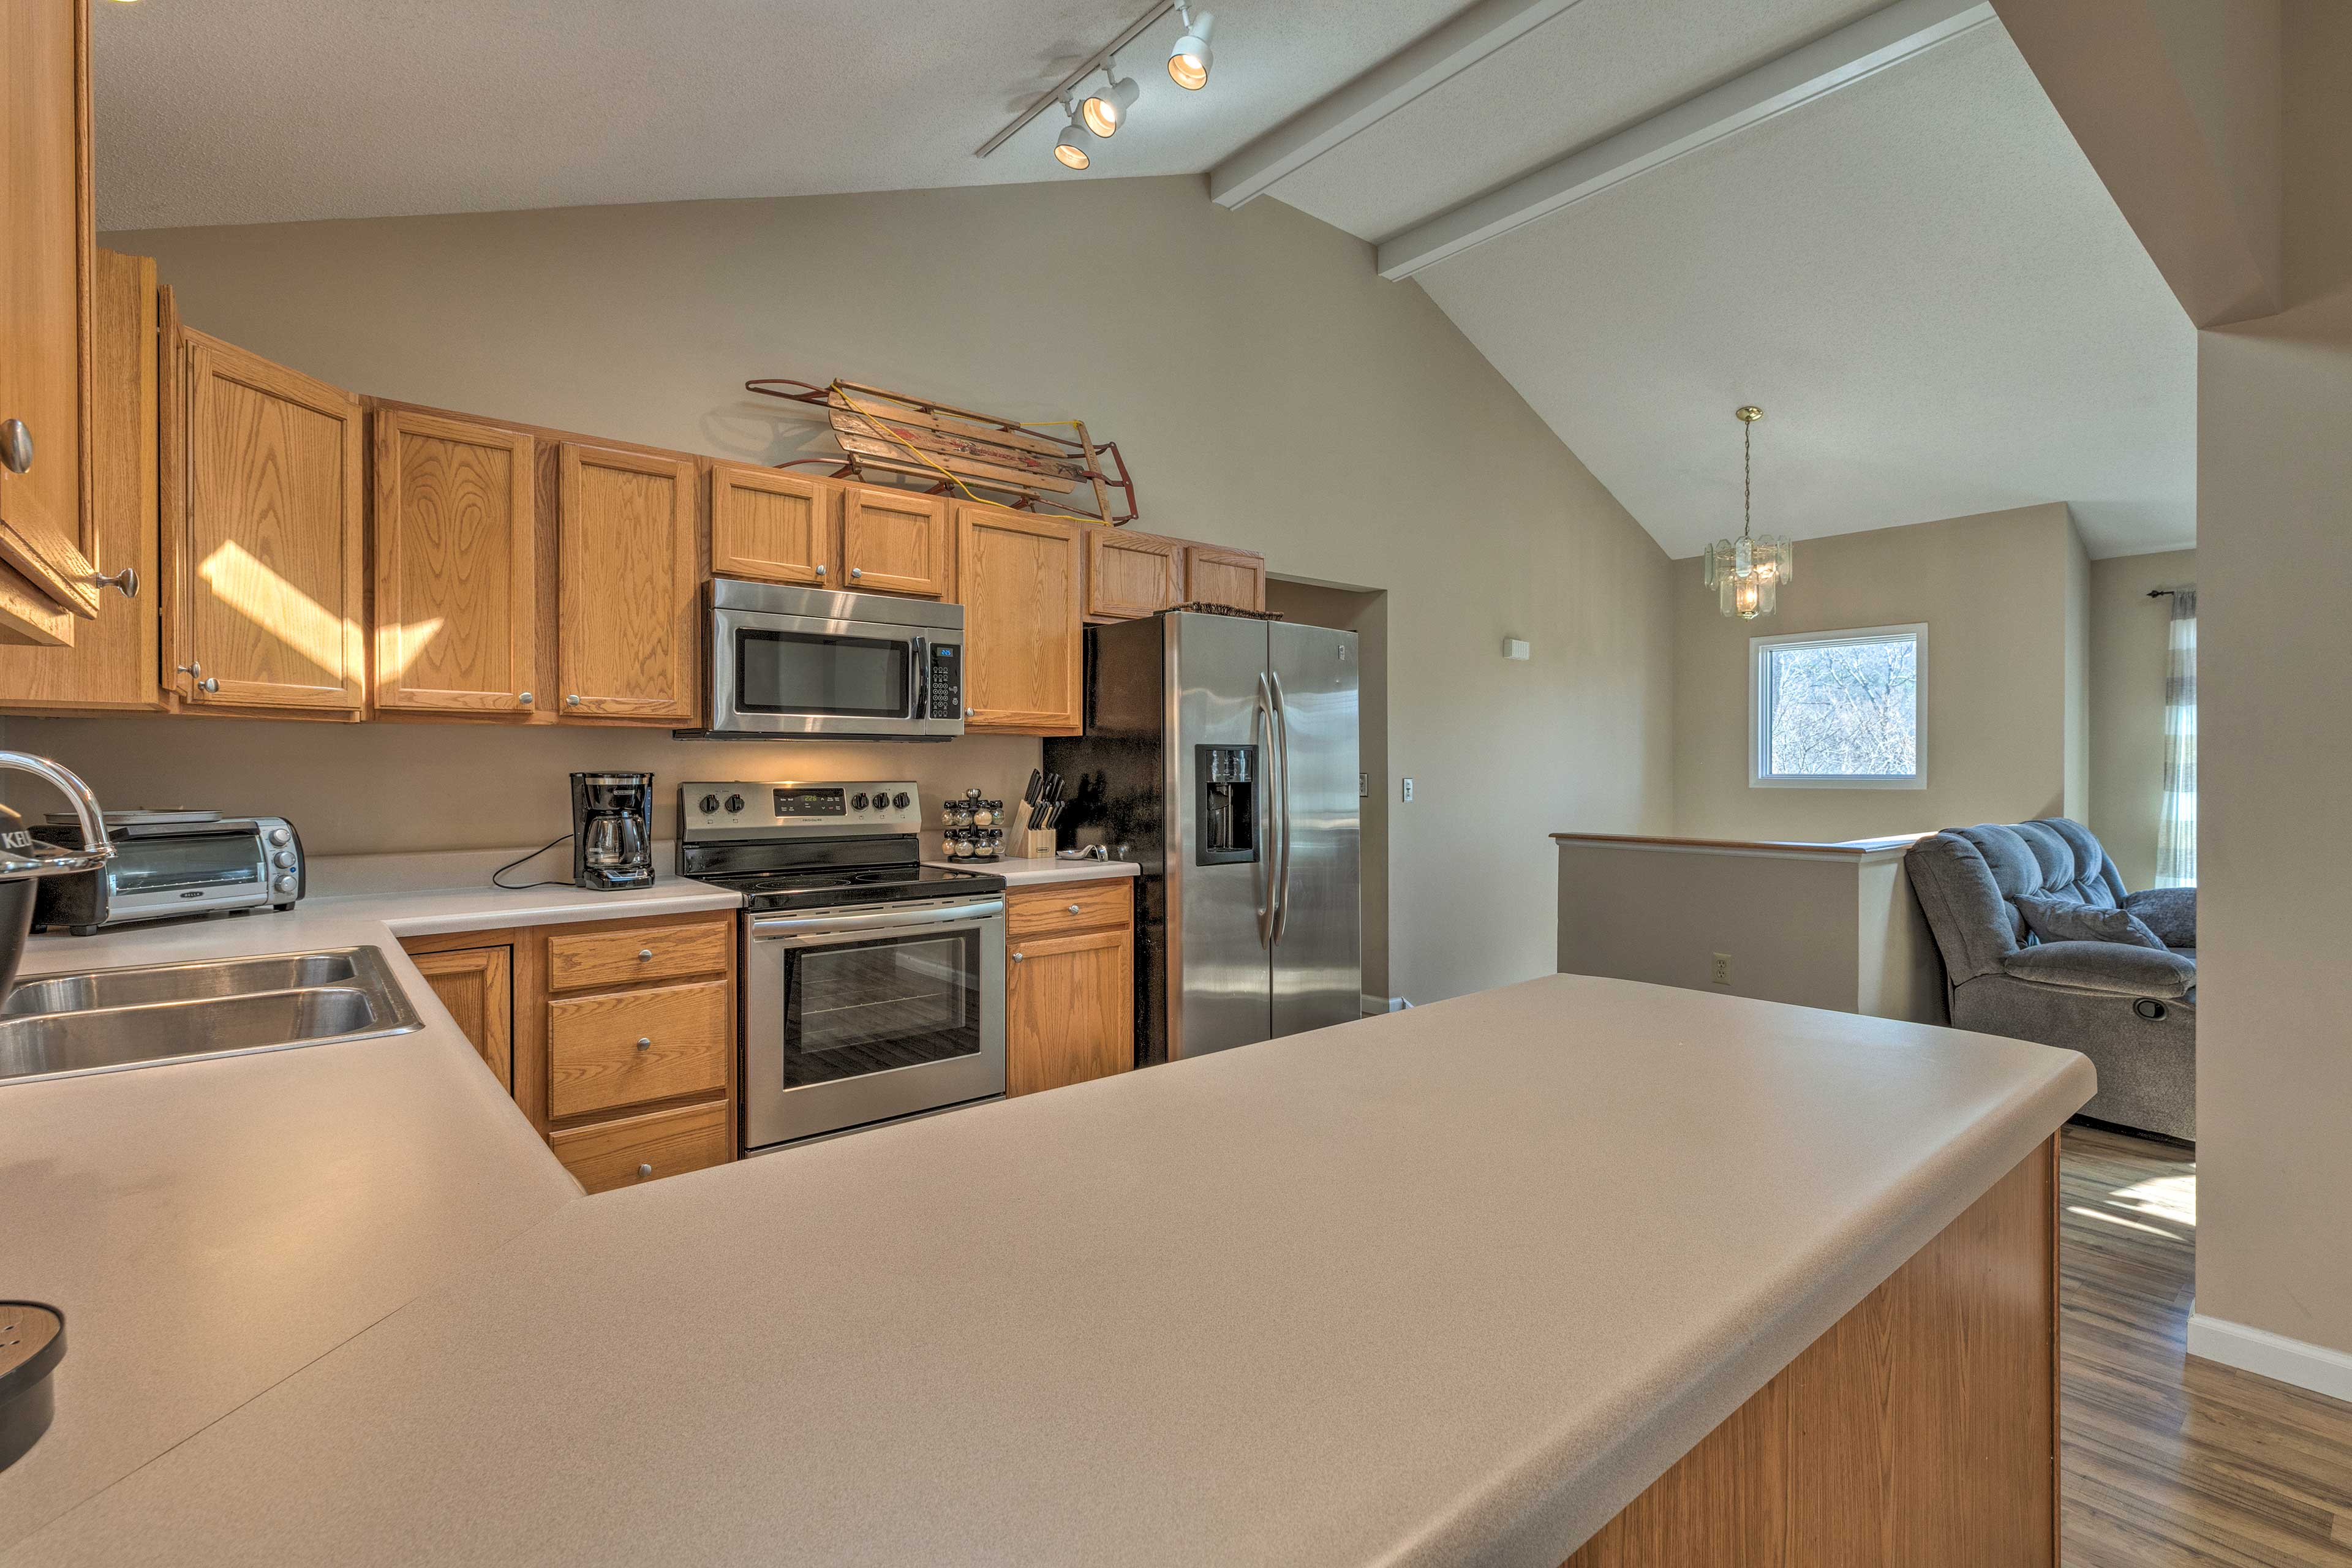 Stainless steel appliances elevate the look of the kitchen.